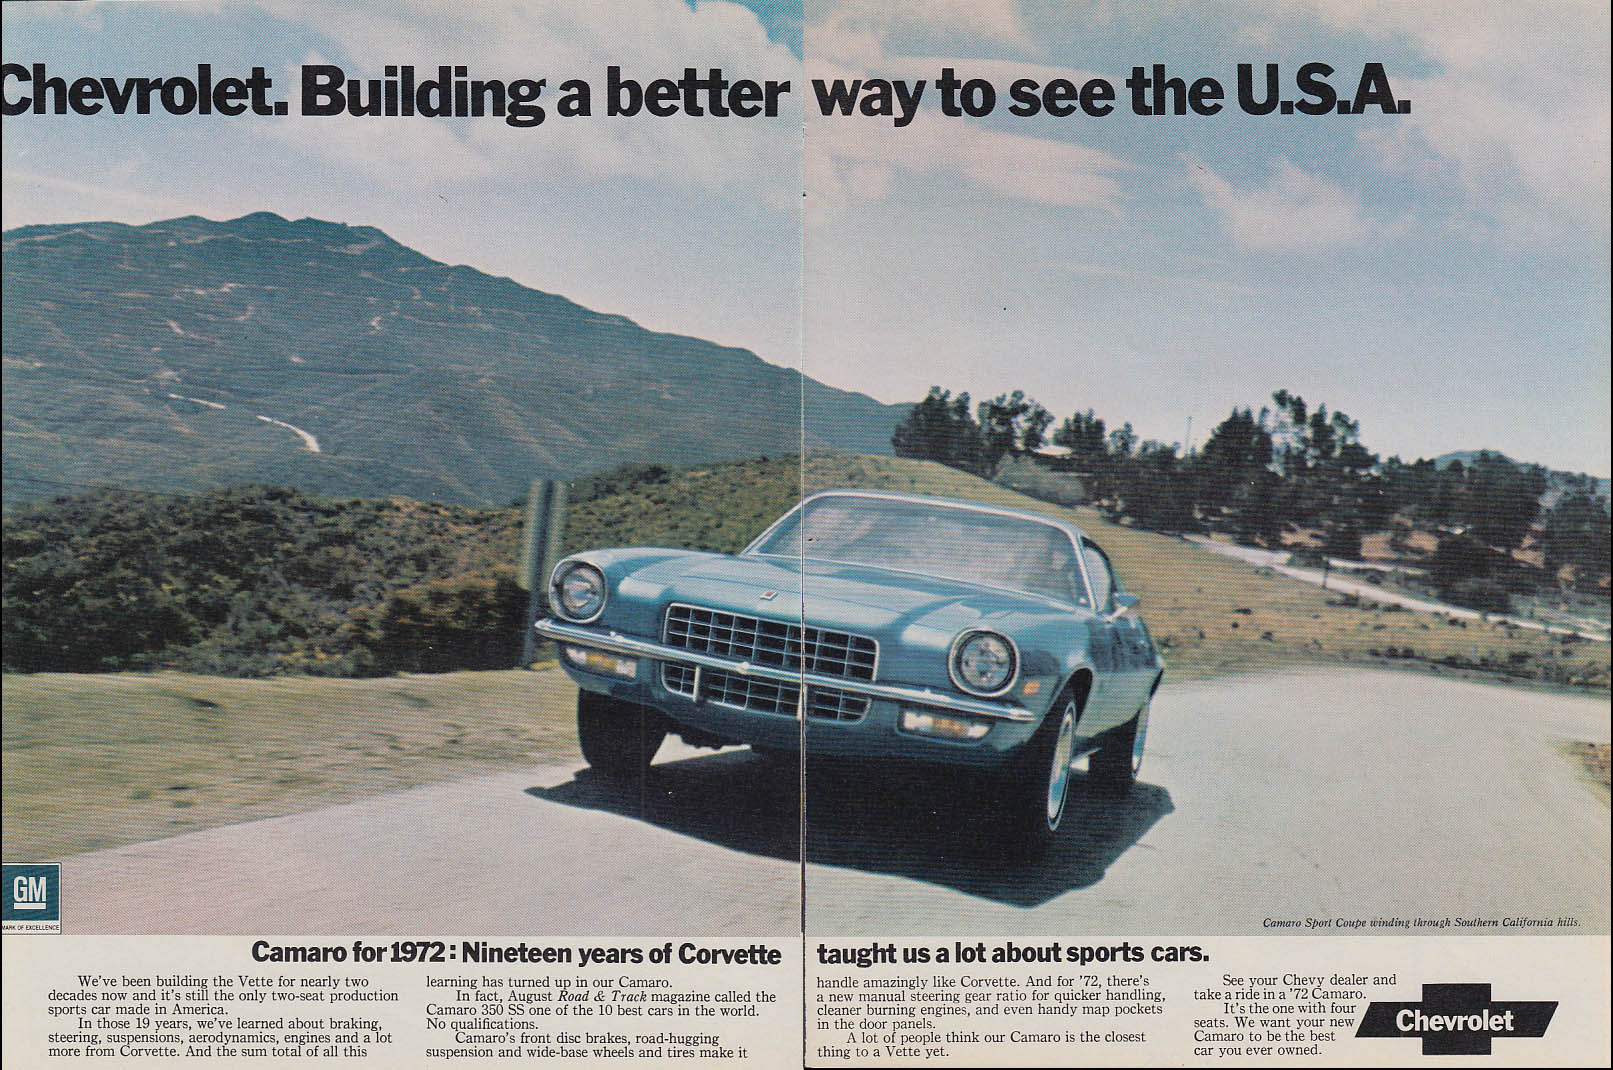 19 years of Corvette taught us a lot - Chevrolet Camaro ad 1972 HR